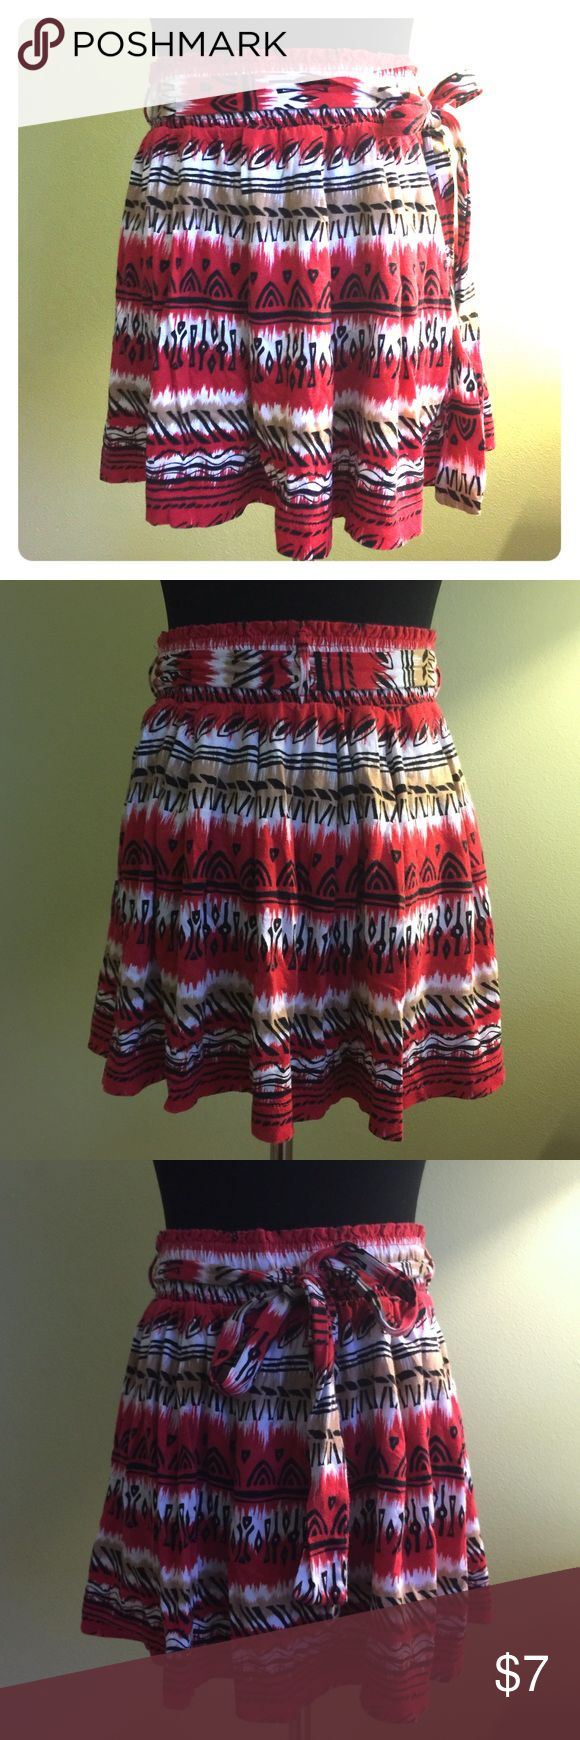 💯 Cotton tribal print skater mini skirt S 100% cotton flowy mini skirt by XXI. Red, brown, white and black tribal designs. Measures 14 inches long. Super comfy and stretchy. Detachable belt you can tie any way you want. Perfect for layering. Worn once. Excellent condition. Not F21 - tagged for similar style exposure. BUNDLE & SAVE! 💖 Forever 21 Skirts Mini